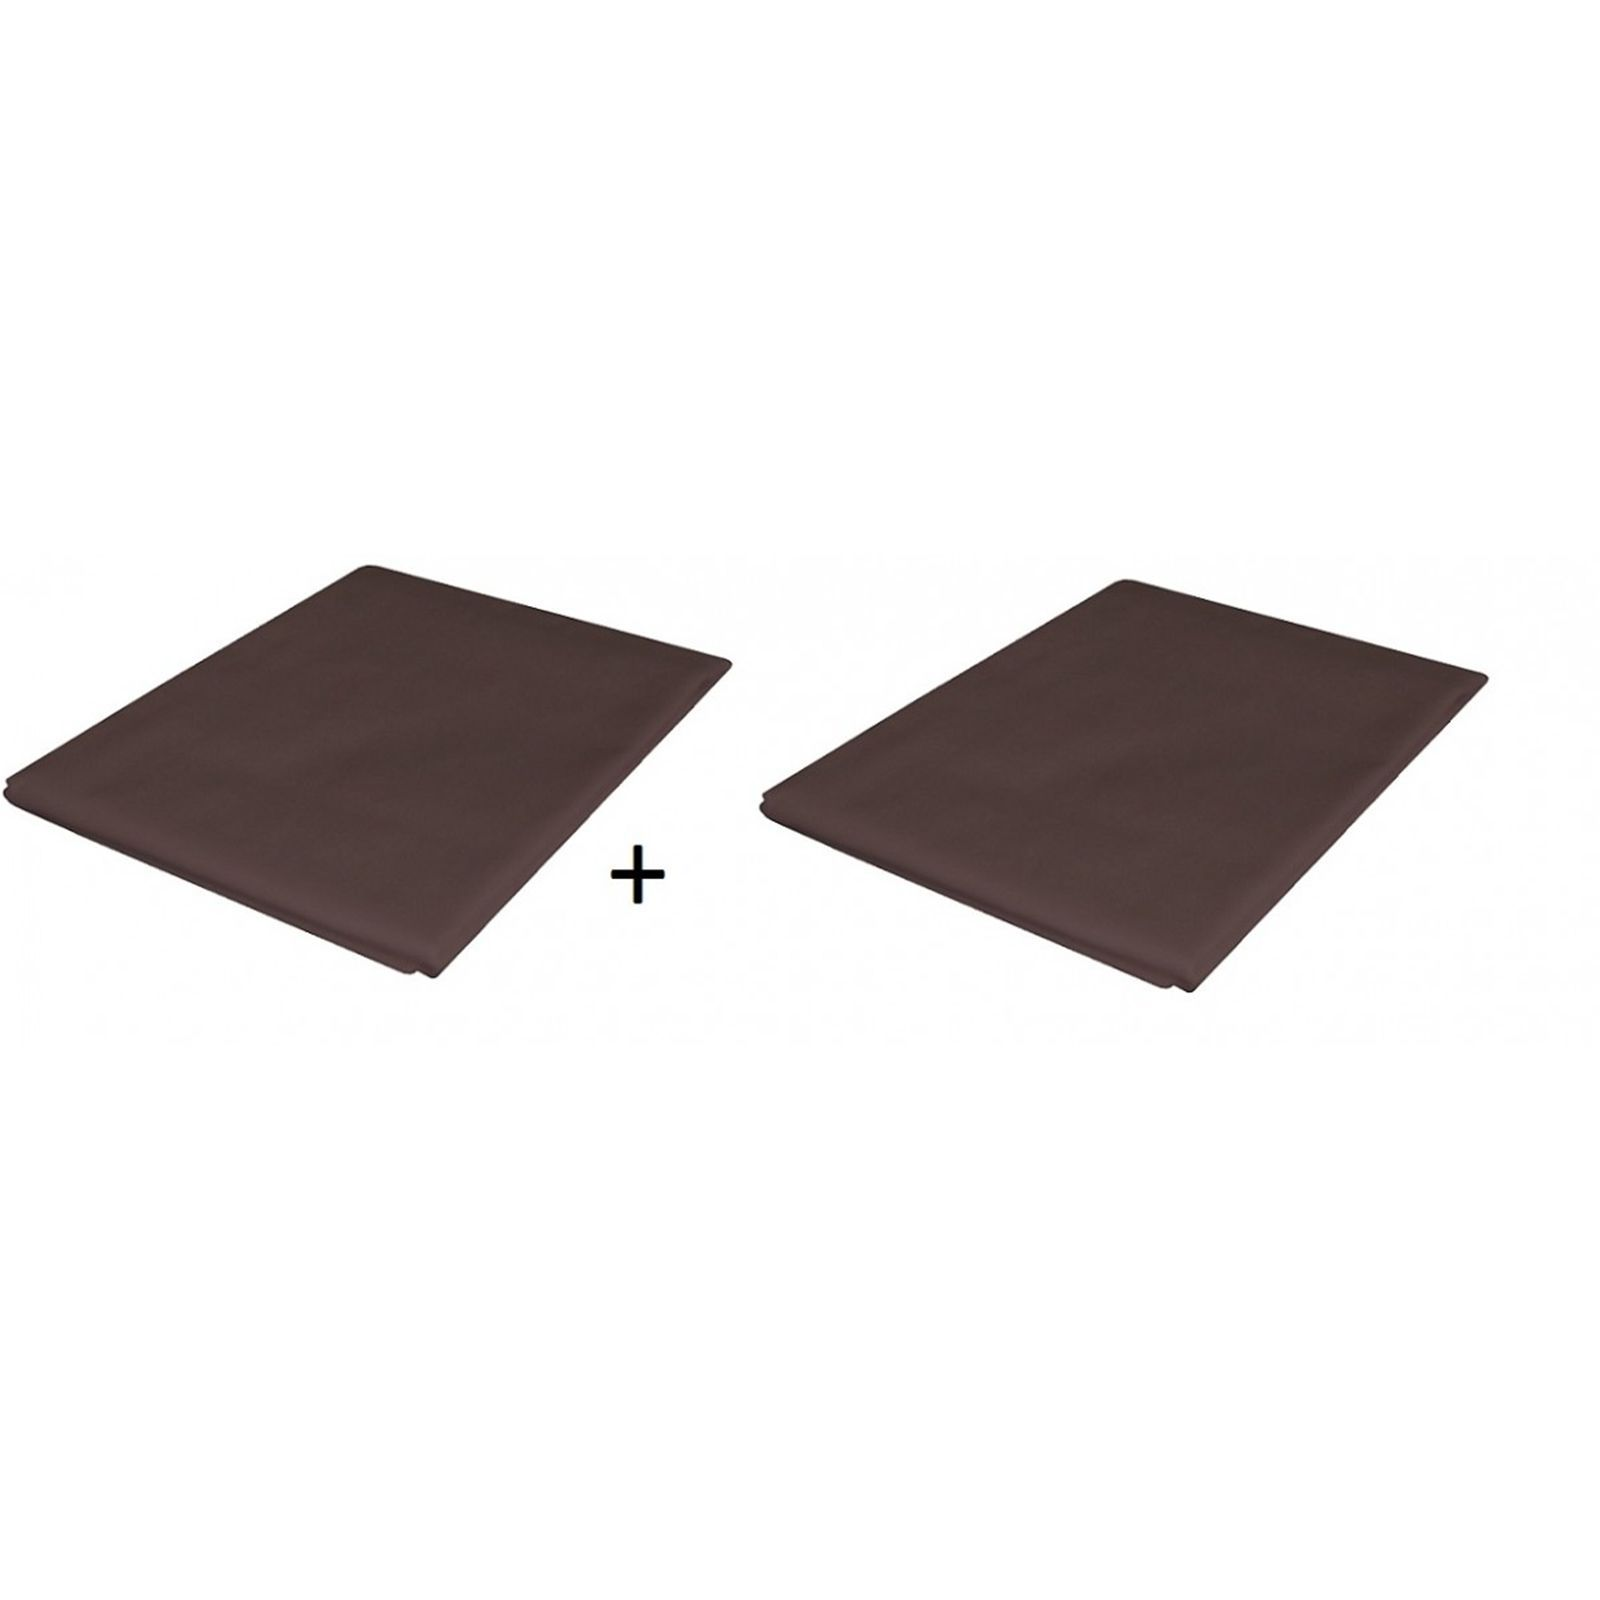 someo someo 2 taies d 39 oreillers chocolat 40x60 cm. Black Bedroom Furniture Sets. Home Design Ideas